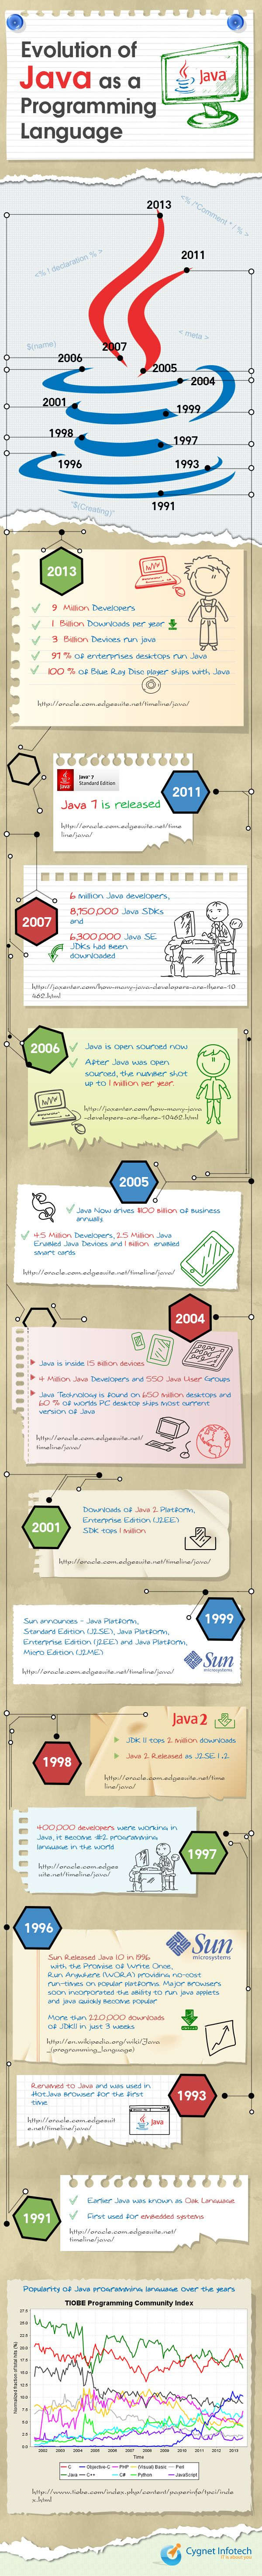 A Brief History on Java Programming Language